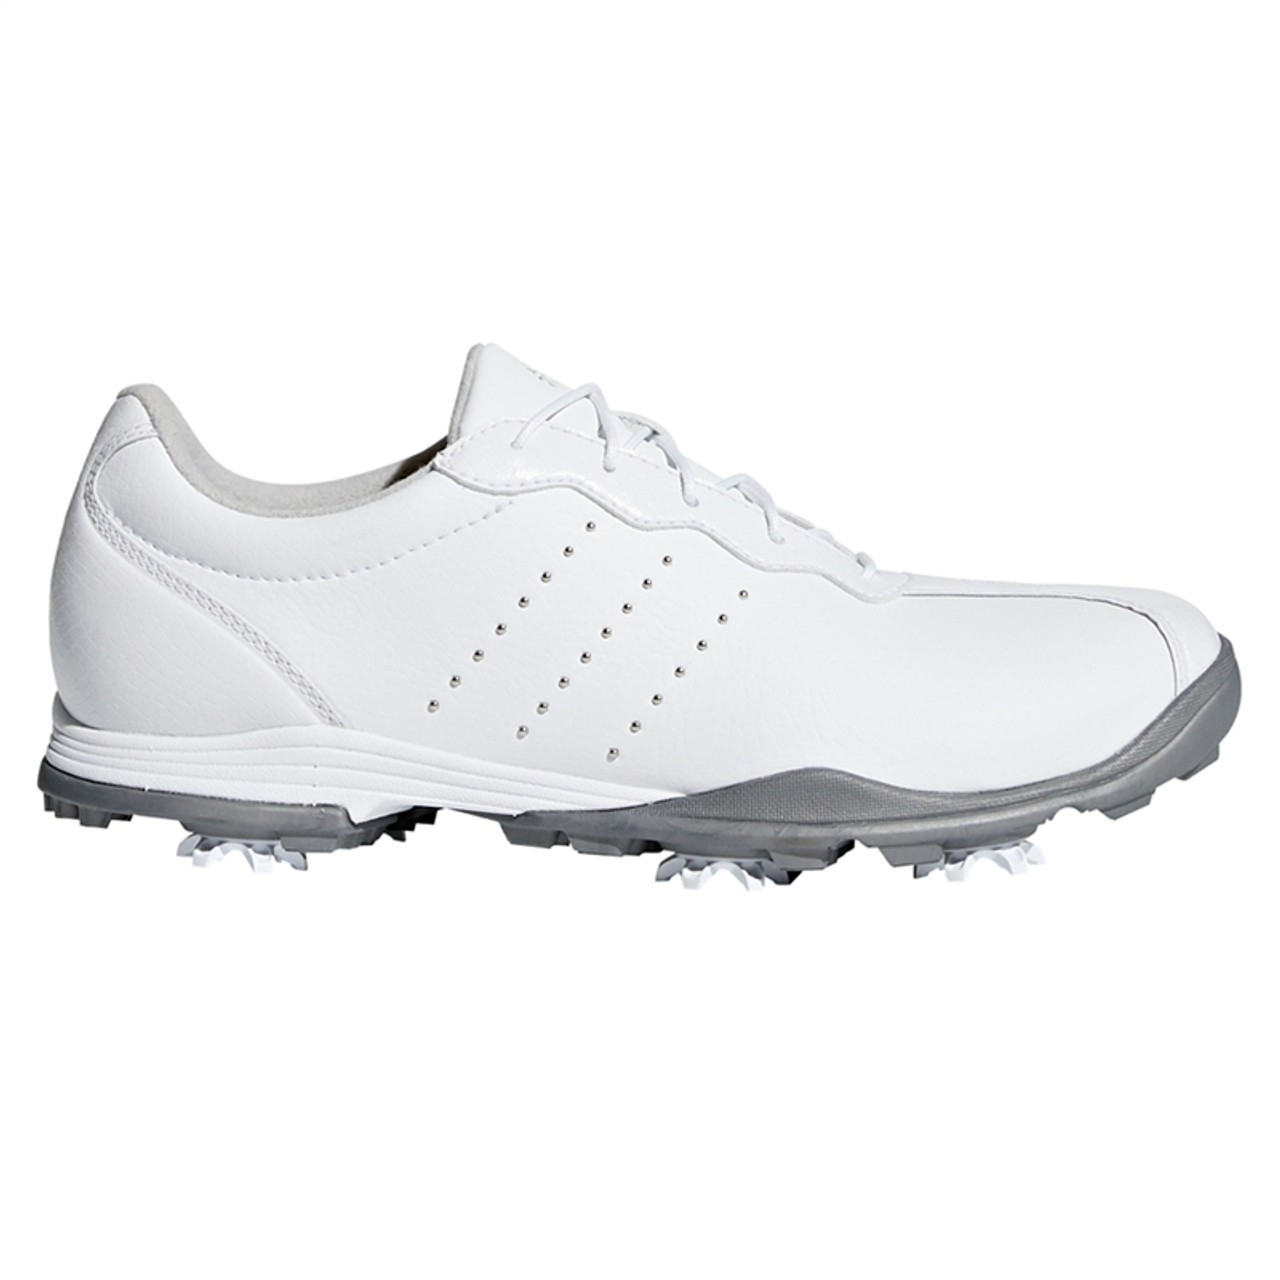 new style d4905 862a9 Adidas adiPURE DC Golf Shoe (White)  Golf4Her